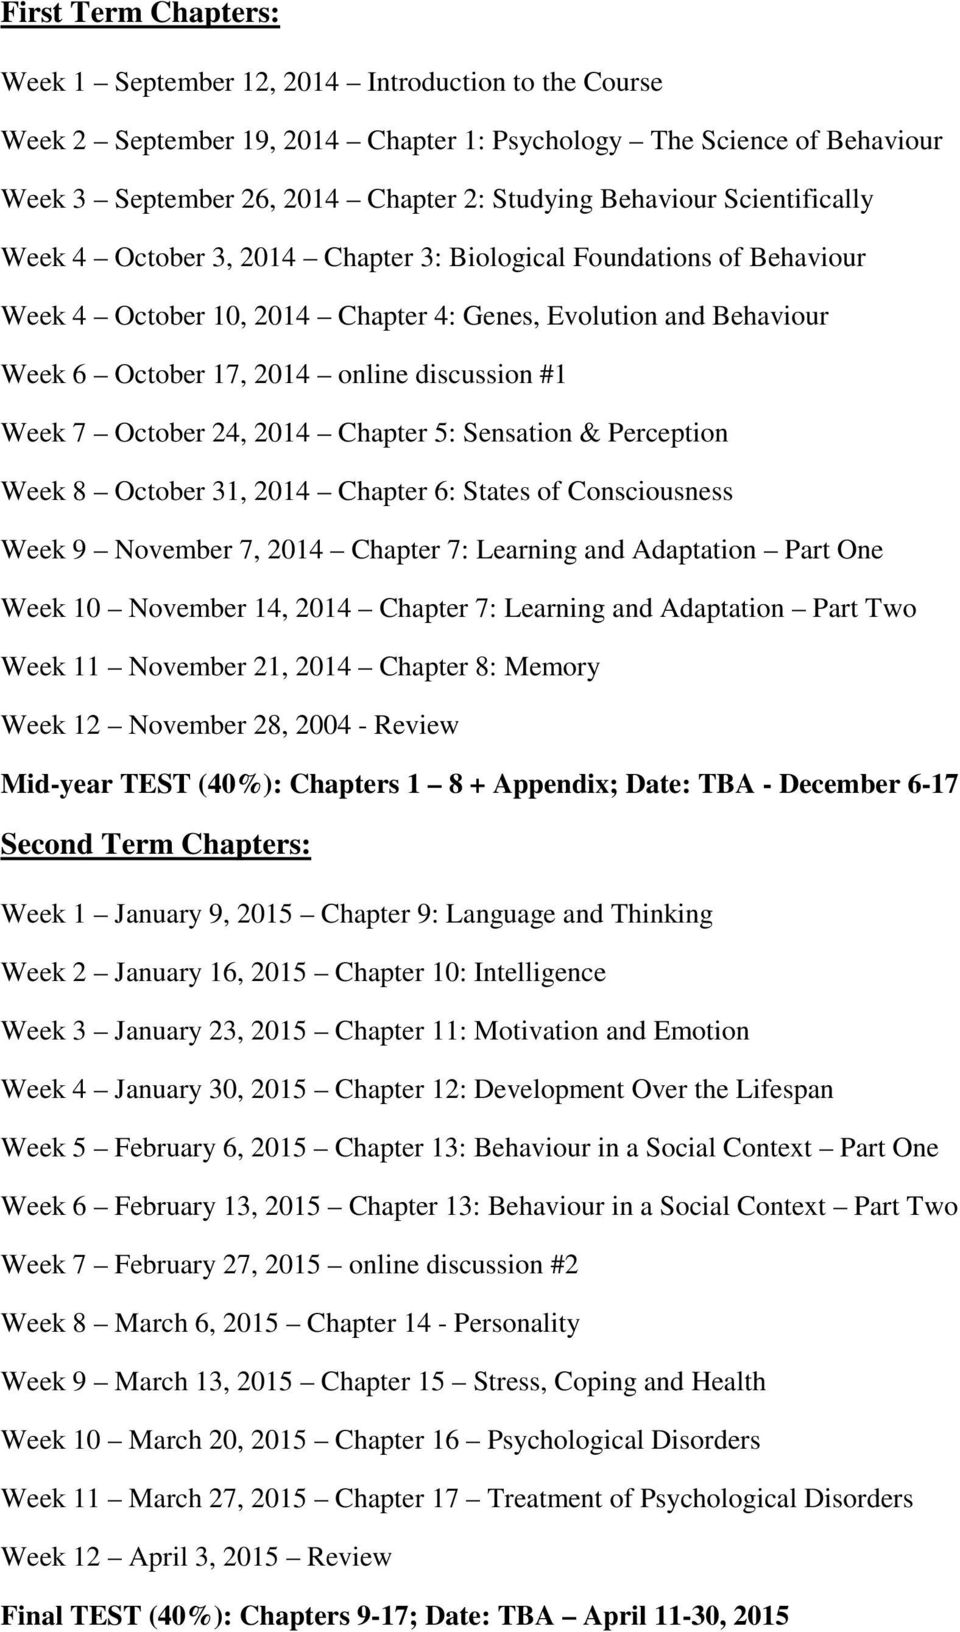 discussion #1 Week 7 October 24, 2014 Chapter 5: Sensation & Perception Week 8 October 31, 2014 Chapter 6: States of Consciousness Week 9 November 7, 2014 Chapter 7: Learning and Adaptation Part One